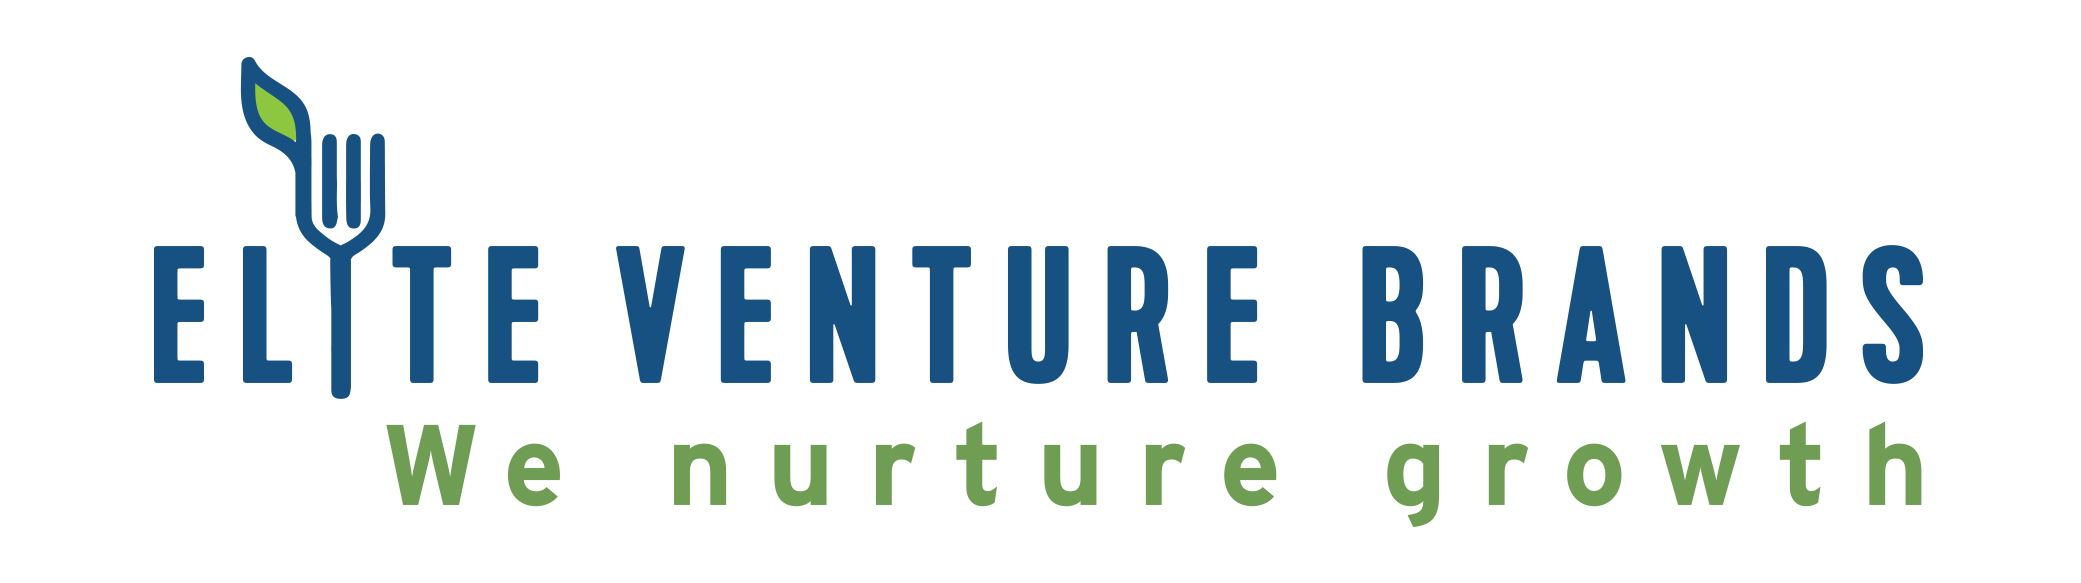 Natural and Organic Food Consulting | Elite Venture Brands